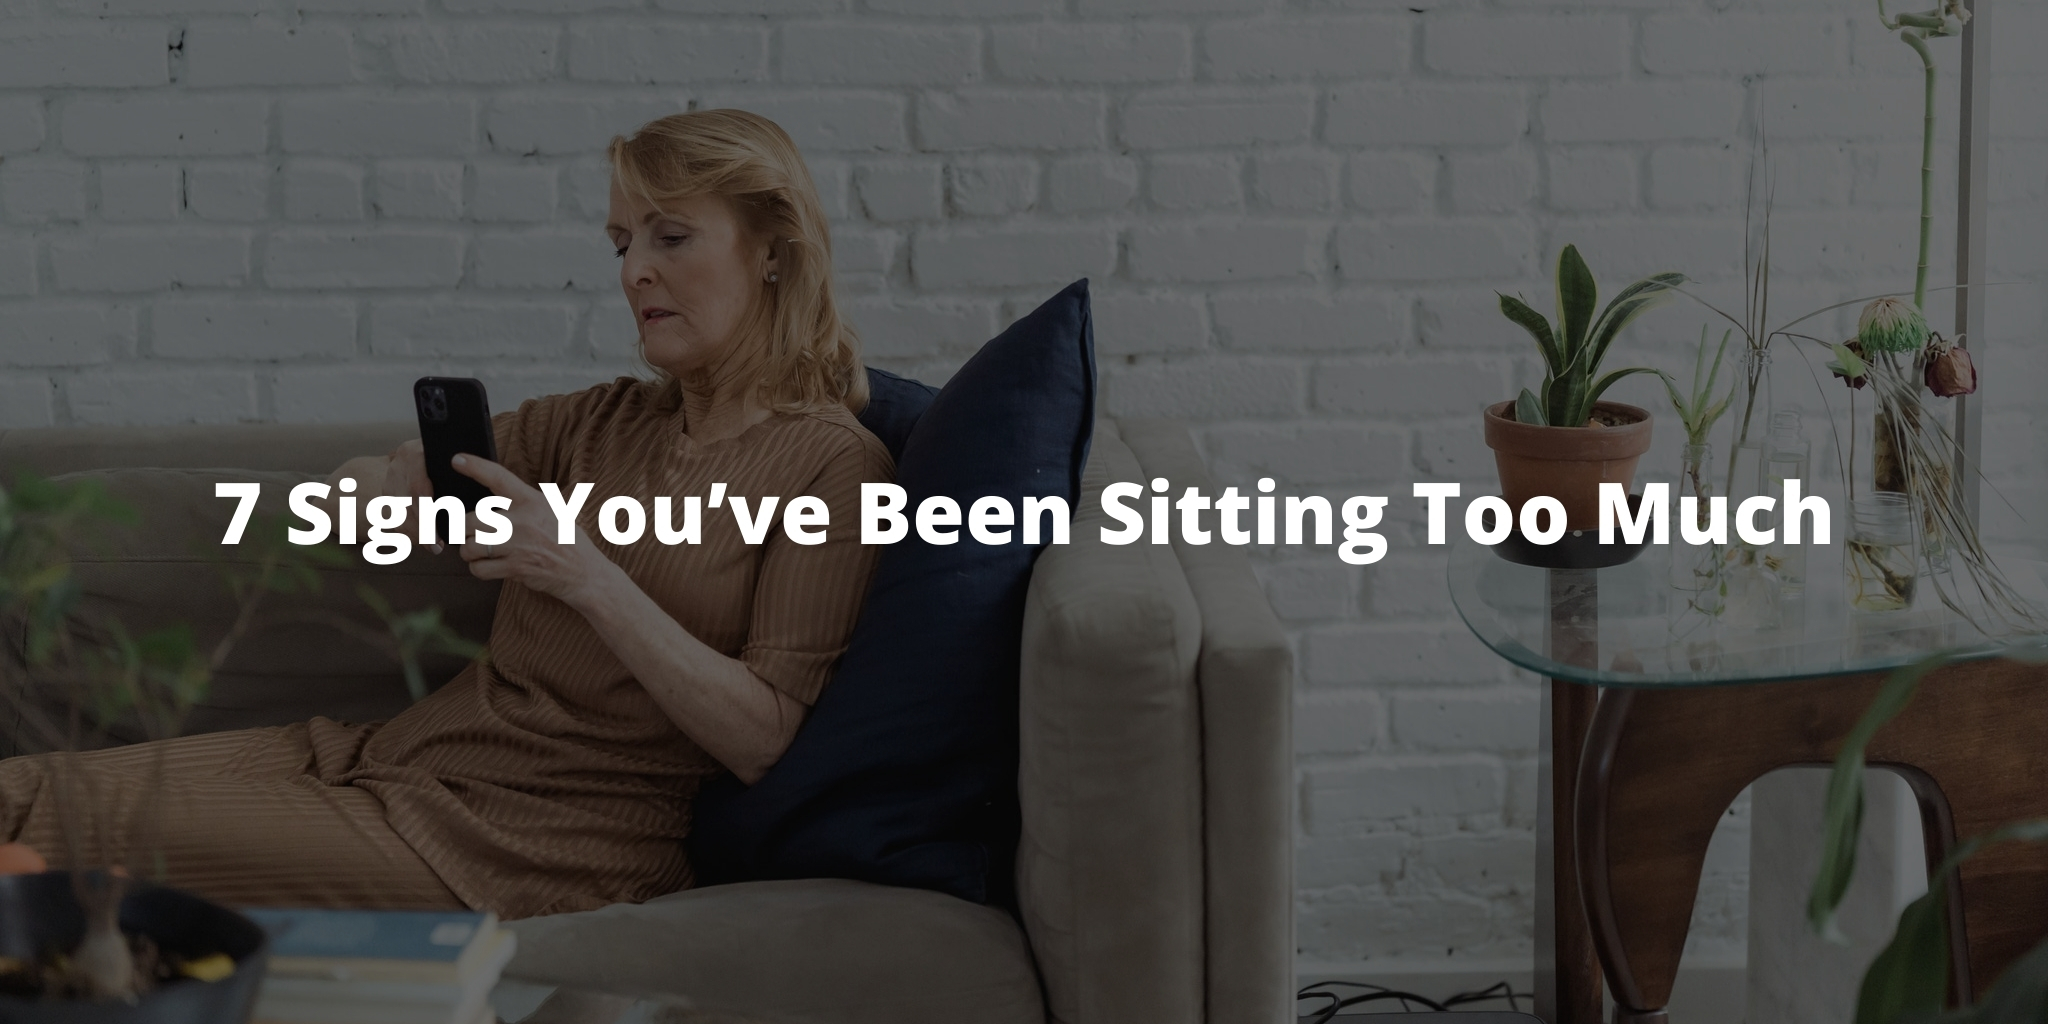 7 Signs You've Been Sitting Too Much